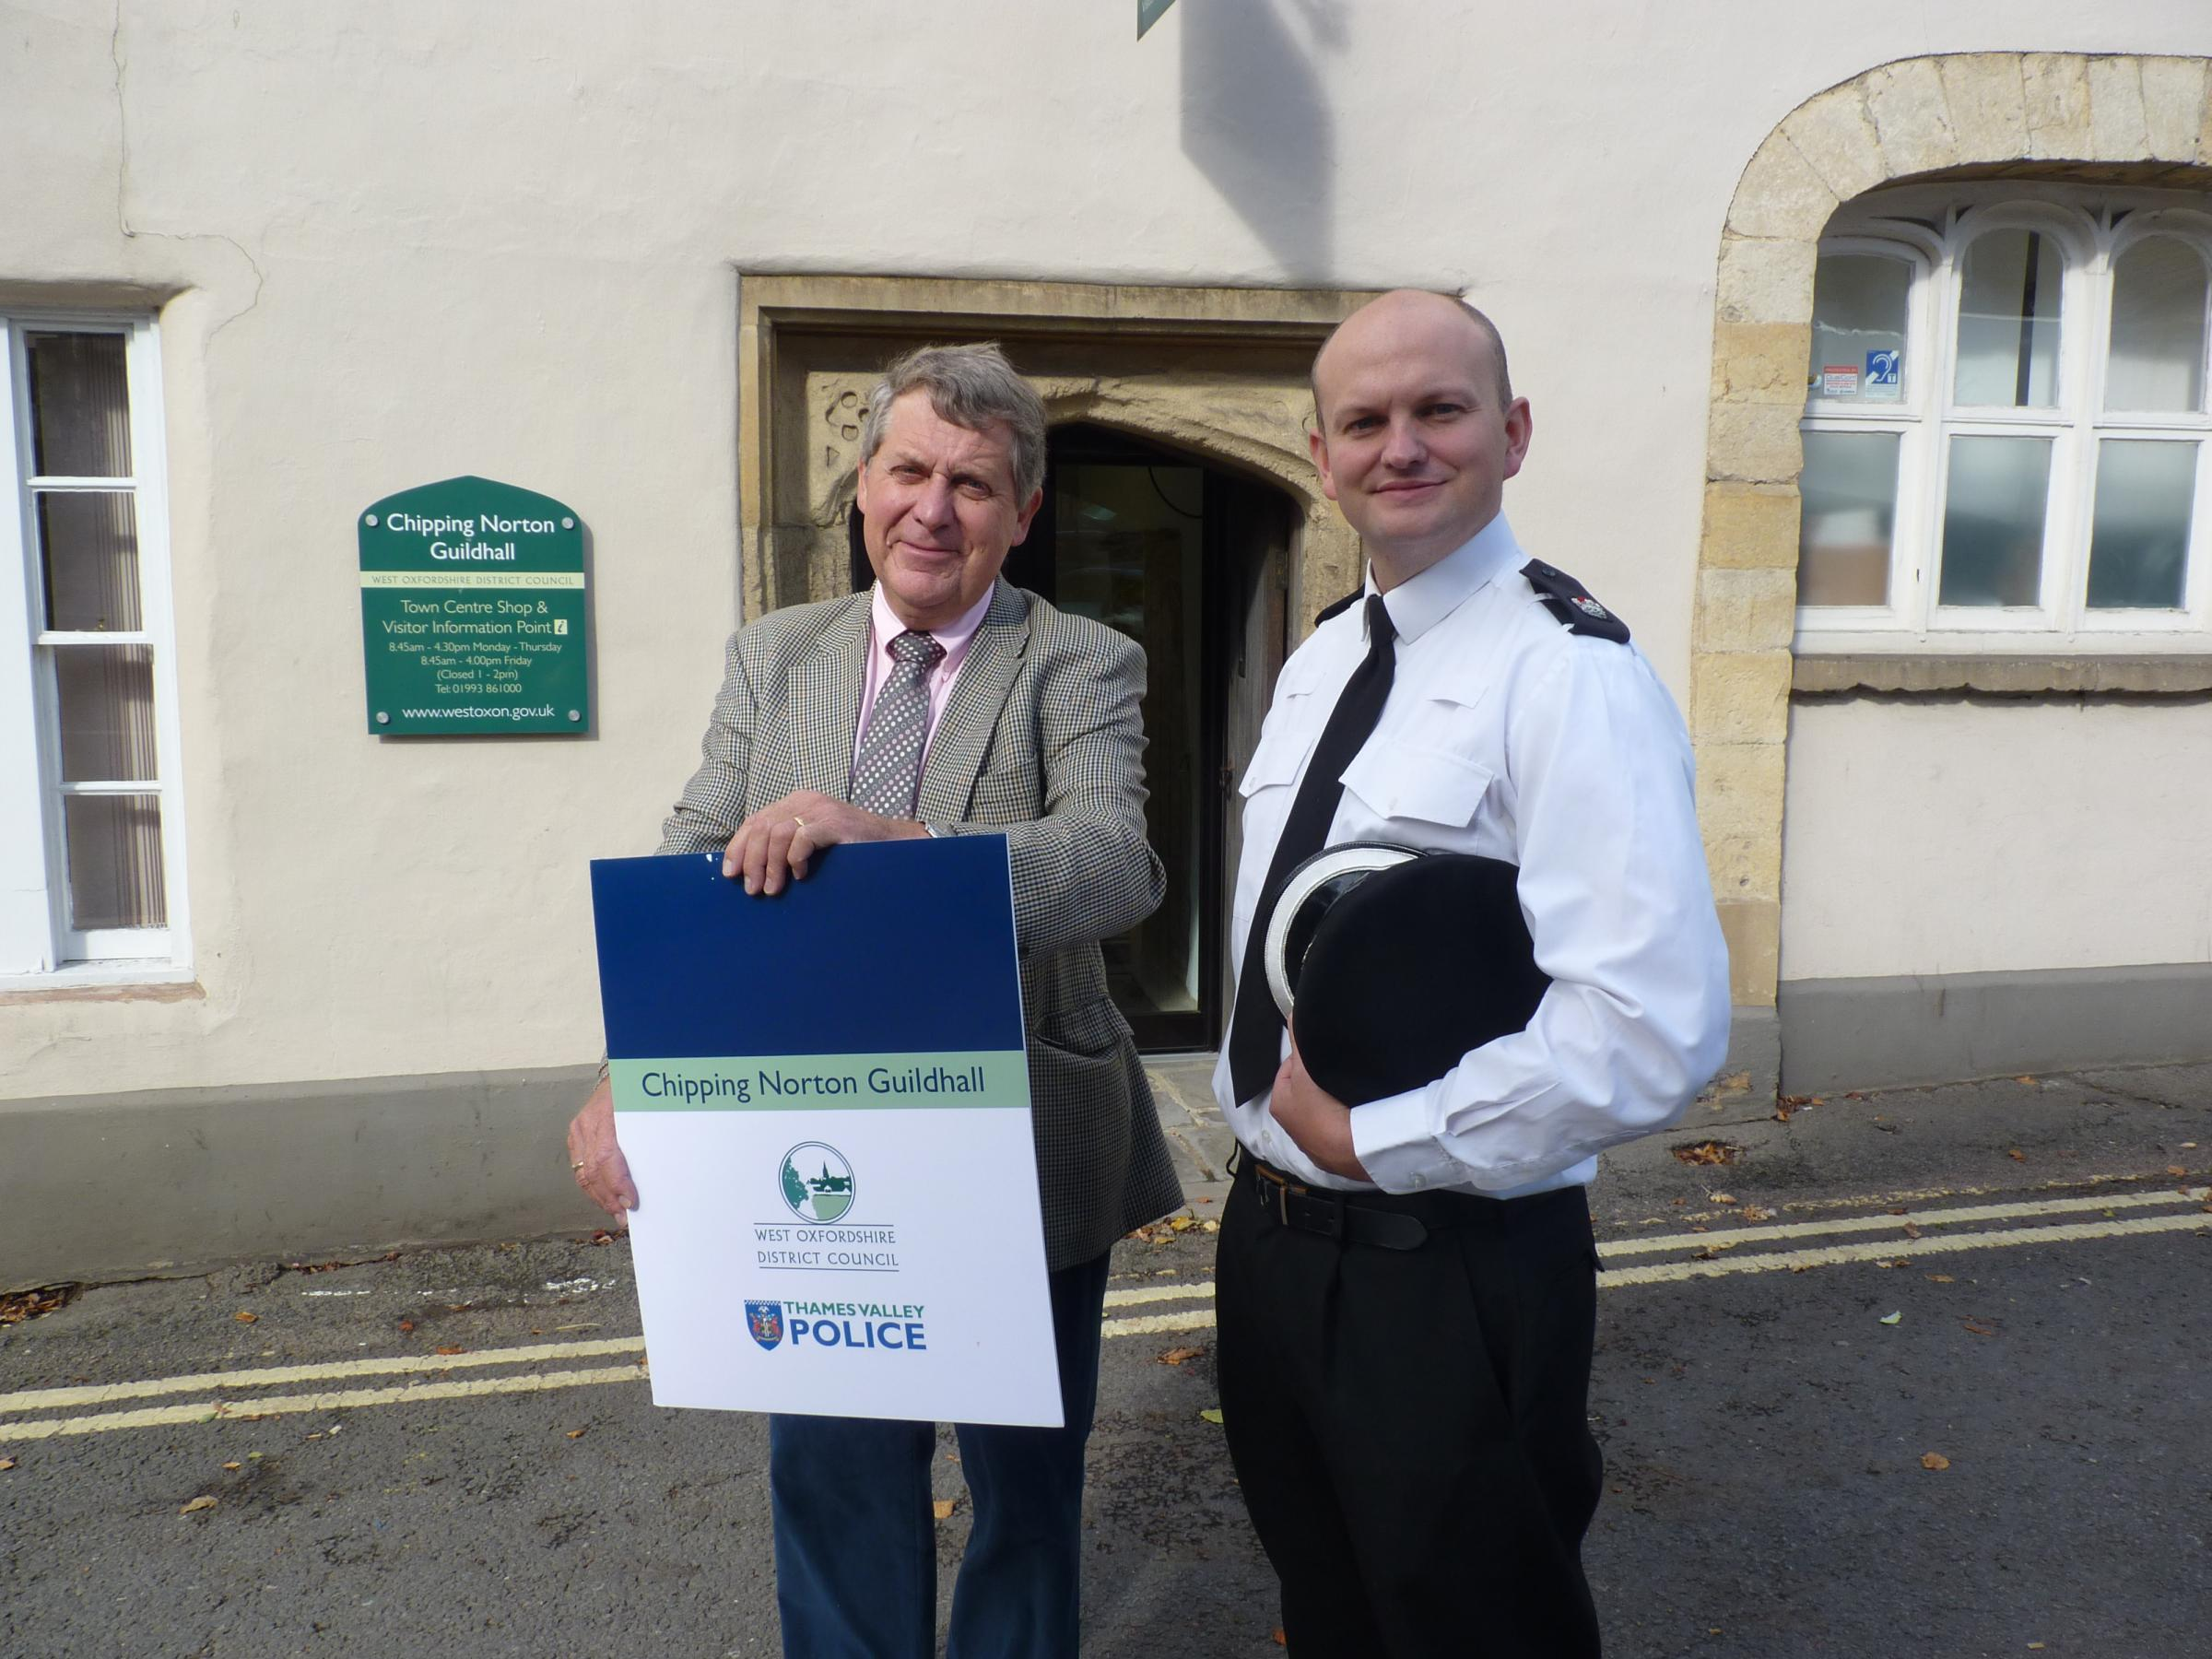 Councillor Mark Booty and Supt Colin Paine, of Thames Valley Police